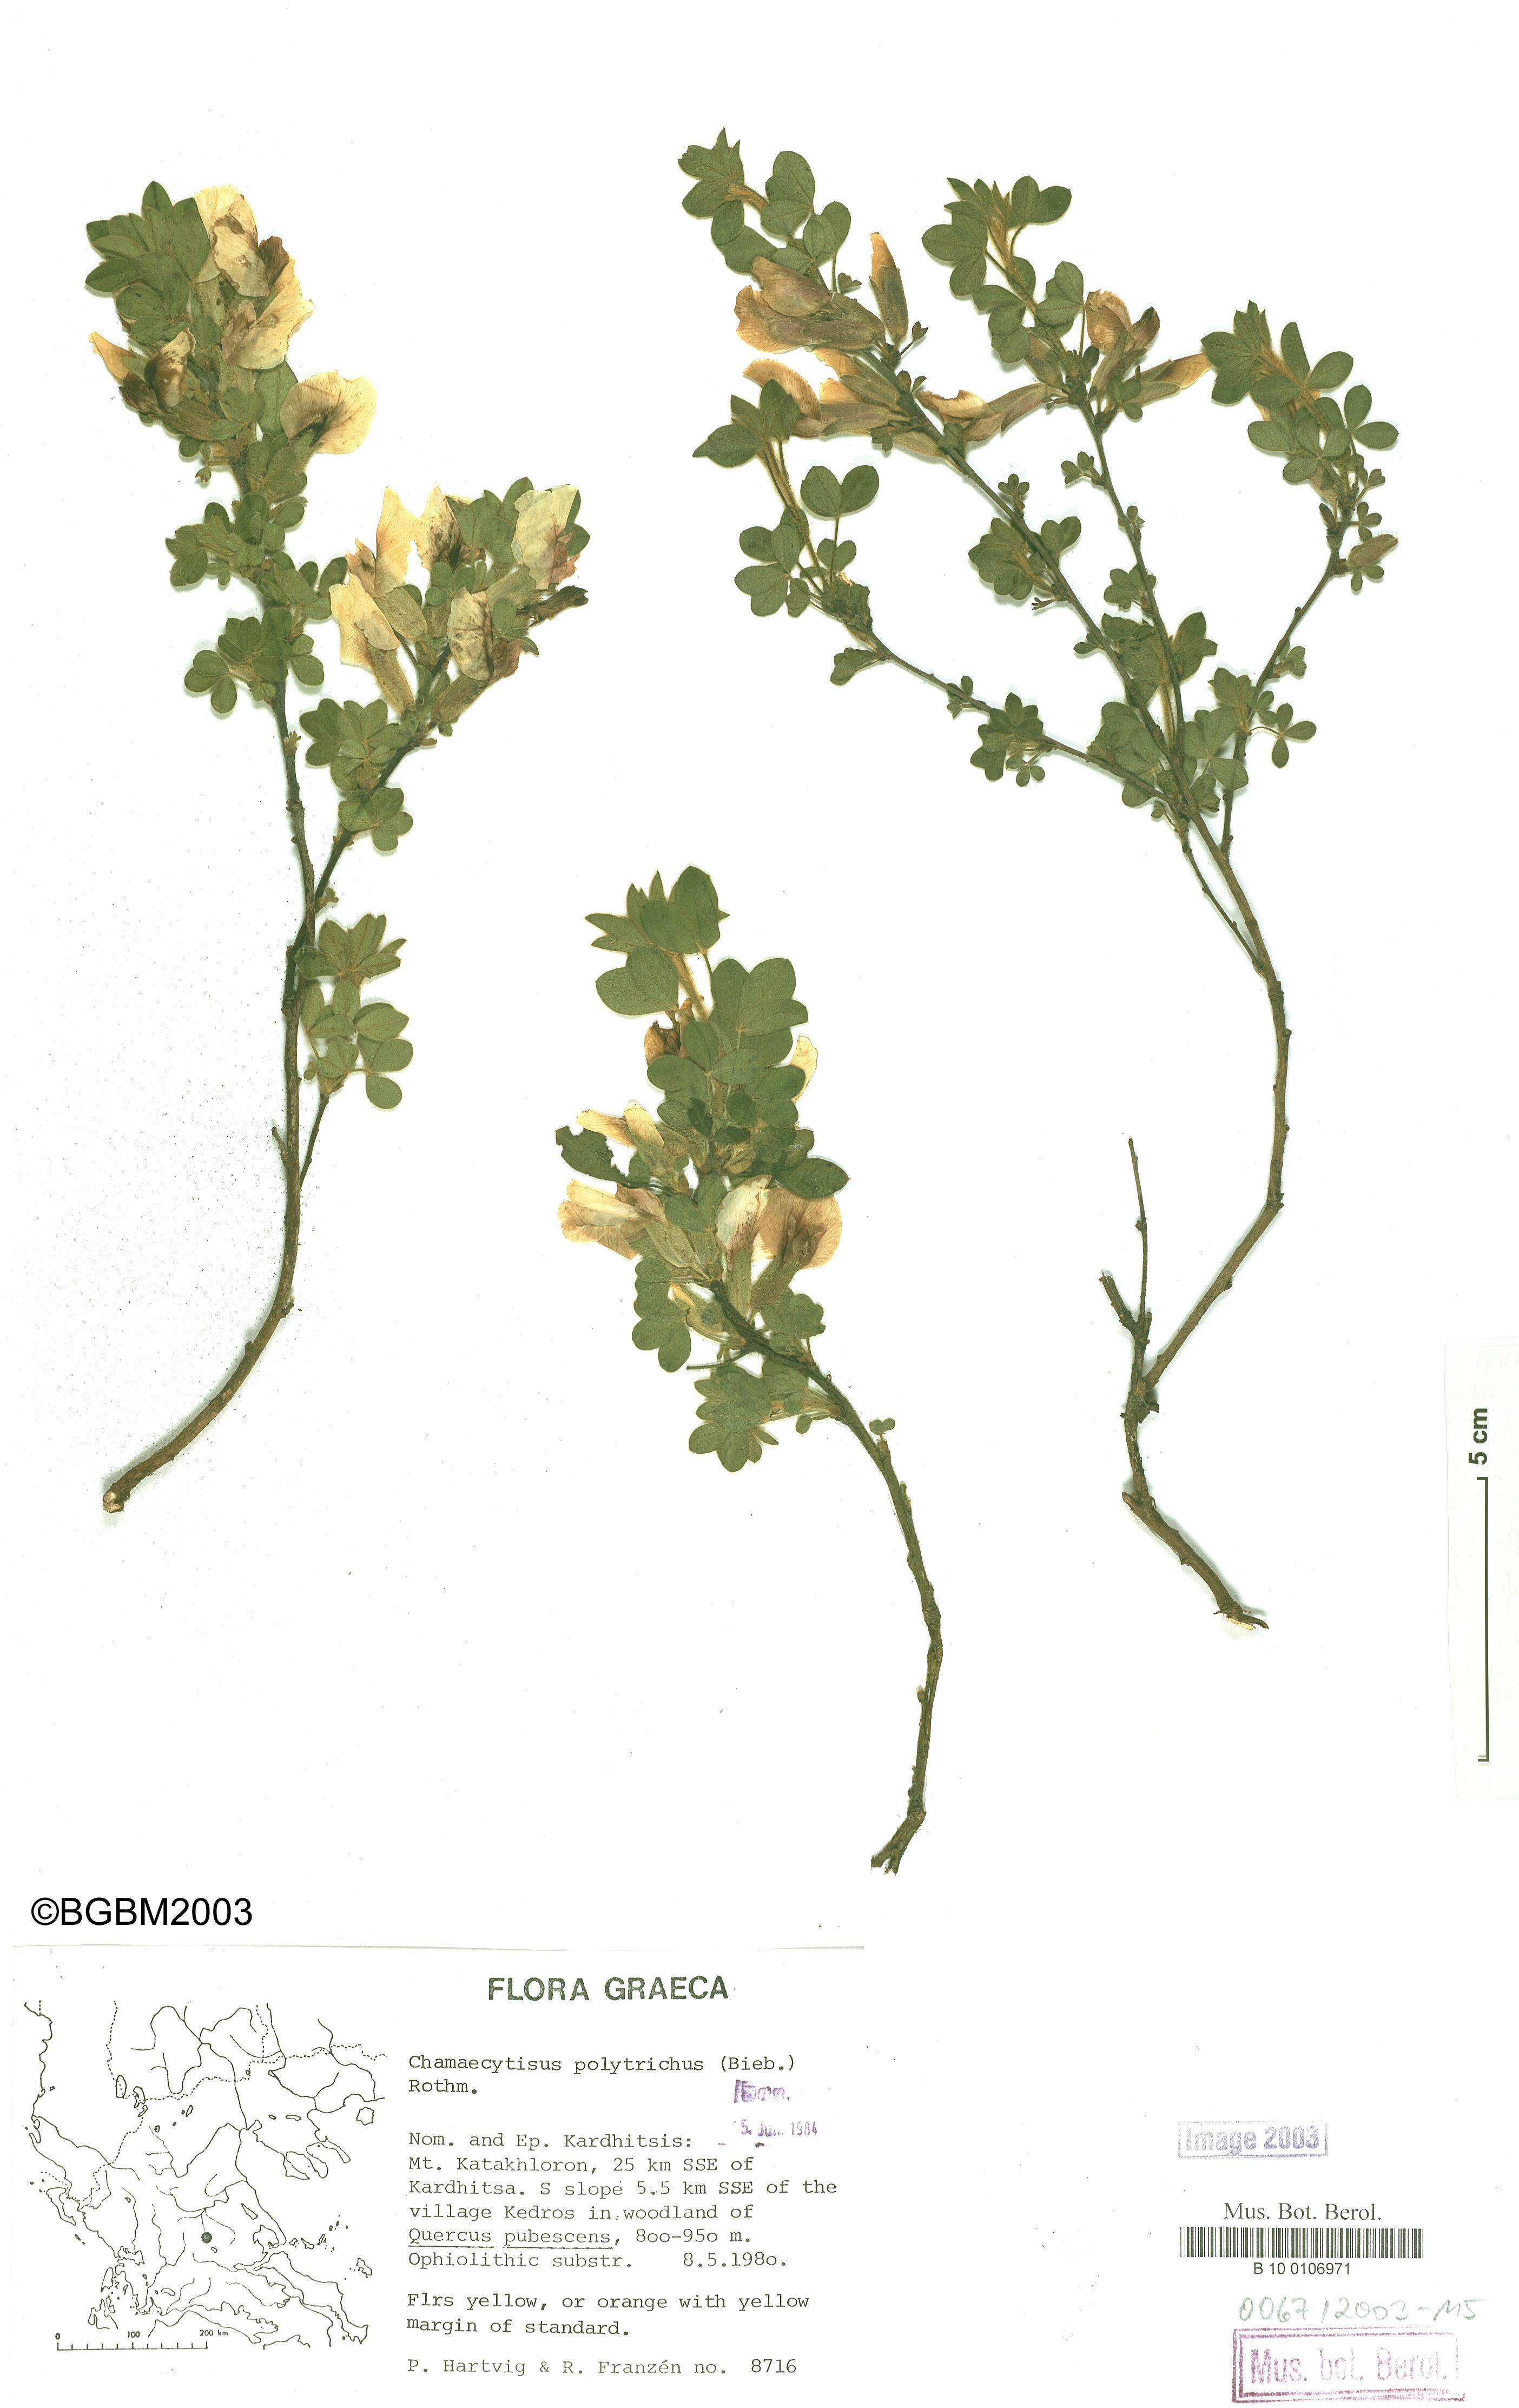 © Botanic Garden and Botanical Museum Berlin-Dahlem, Freie Universität Berlin<br>by Röpert, D. (Ed.) 2000- (continuously updated): Digital specimen images at the Herbarium Berolinense. - Published on the Internet http://ww2.bgbm.org/herbarium/ (Barcode: B 10 0106971 / ImageId: 215732) [accessed 27-Nov-11].<br>